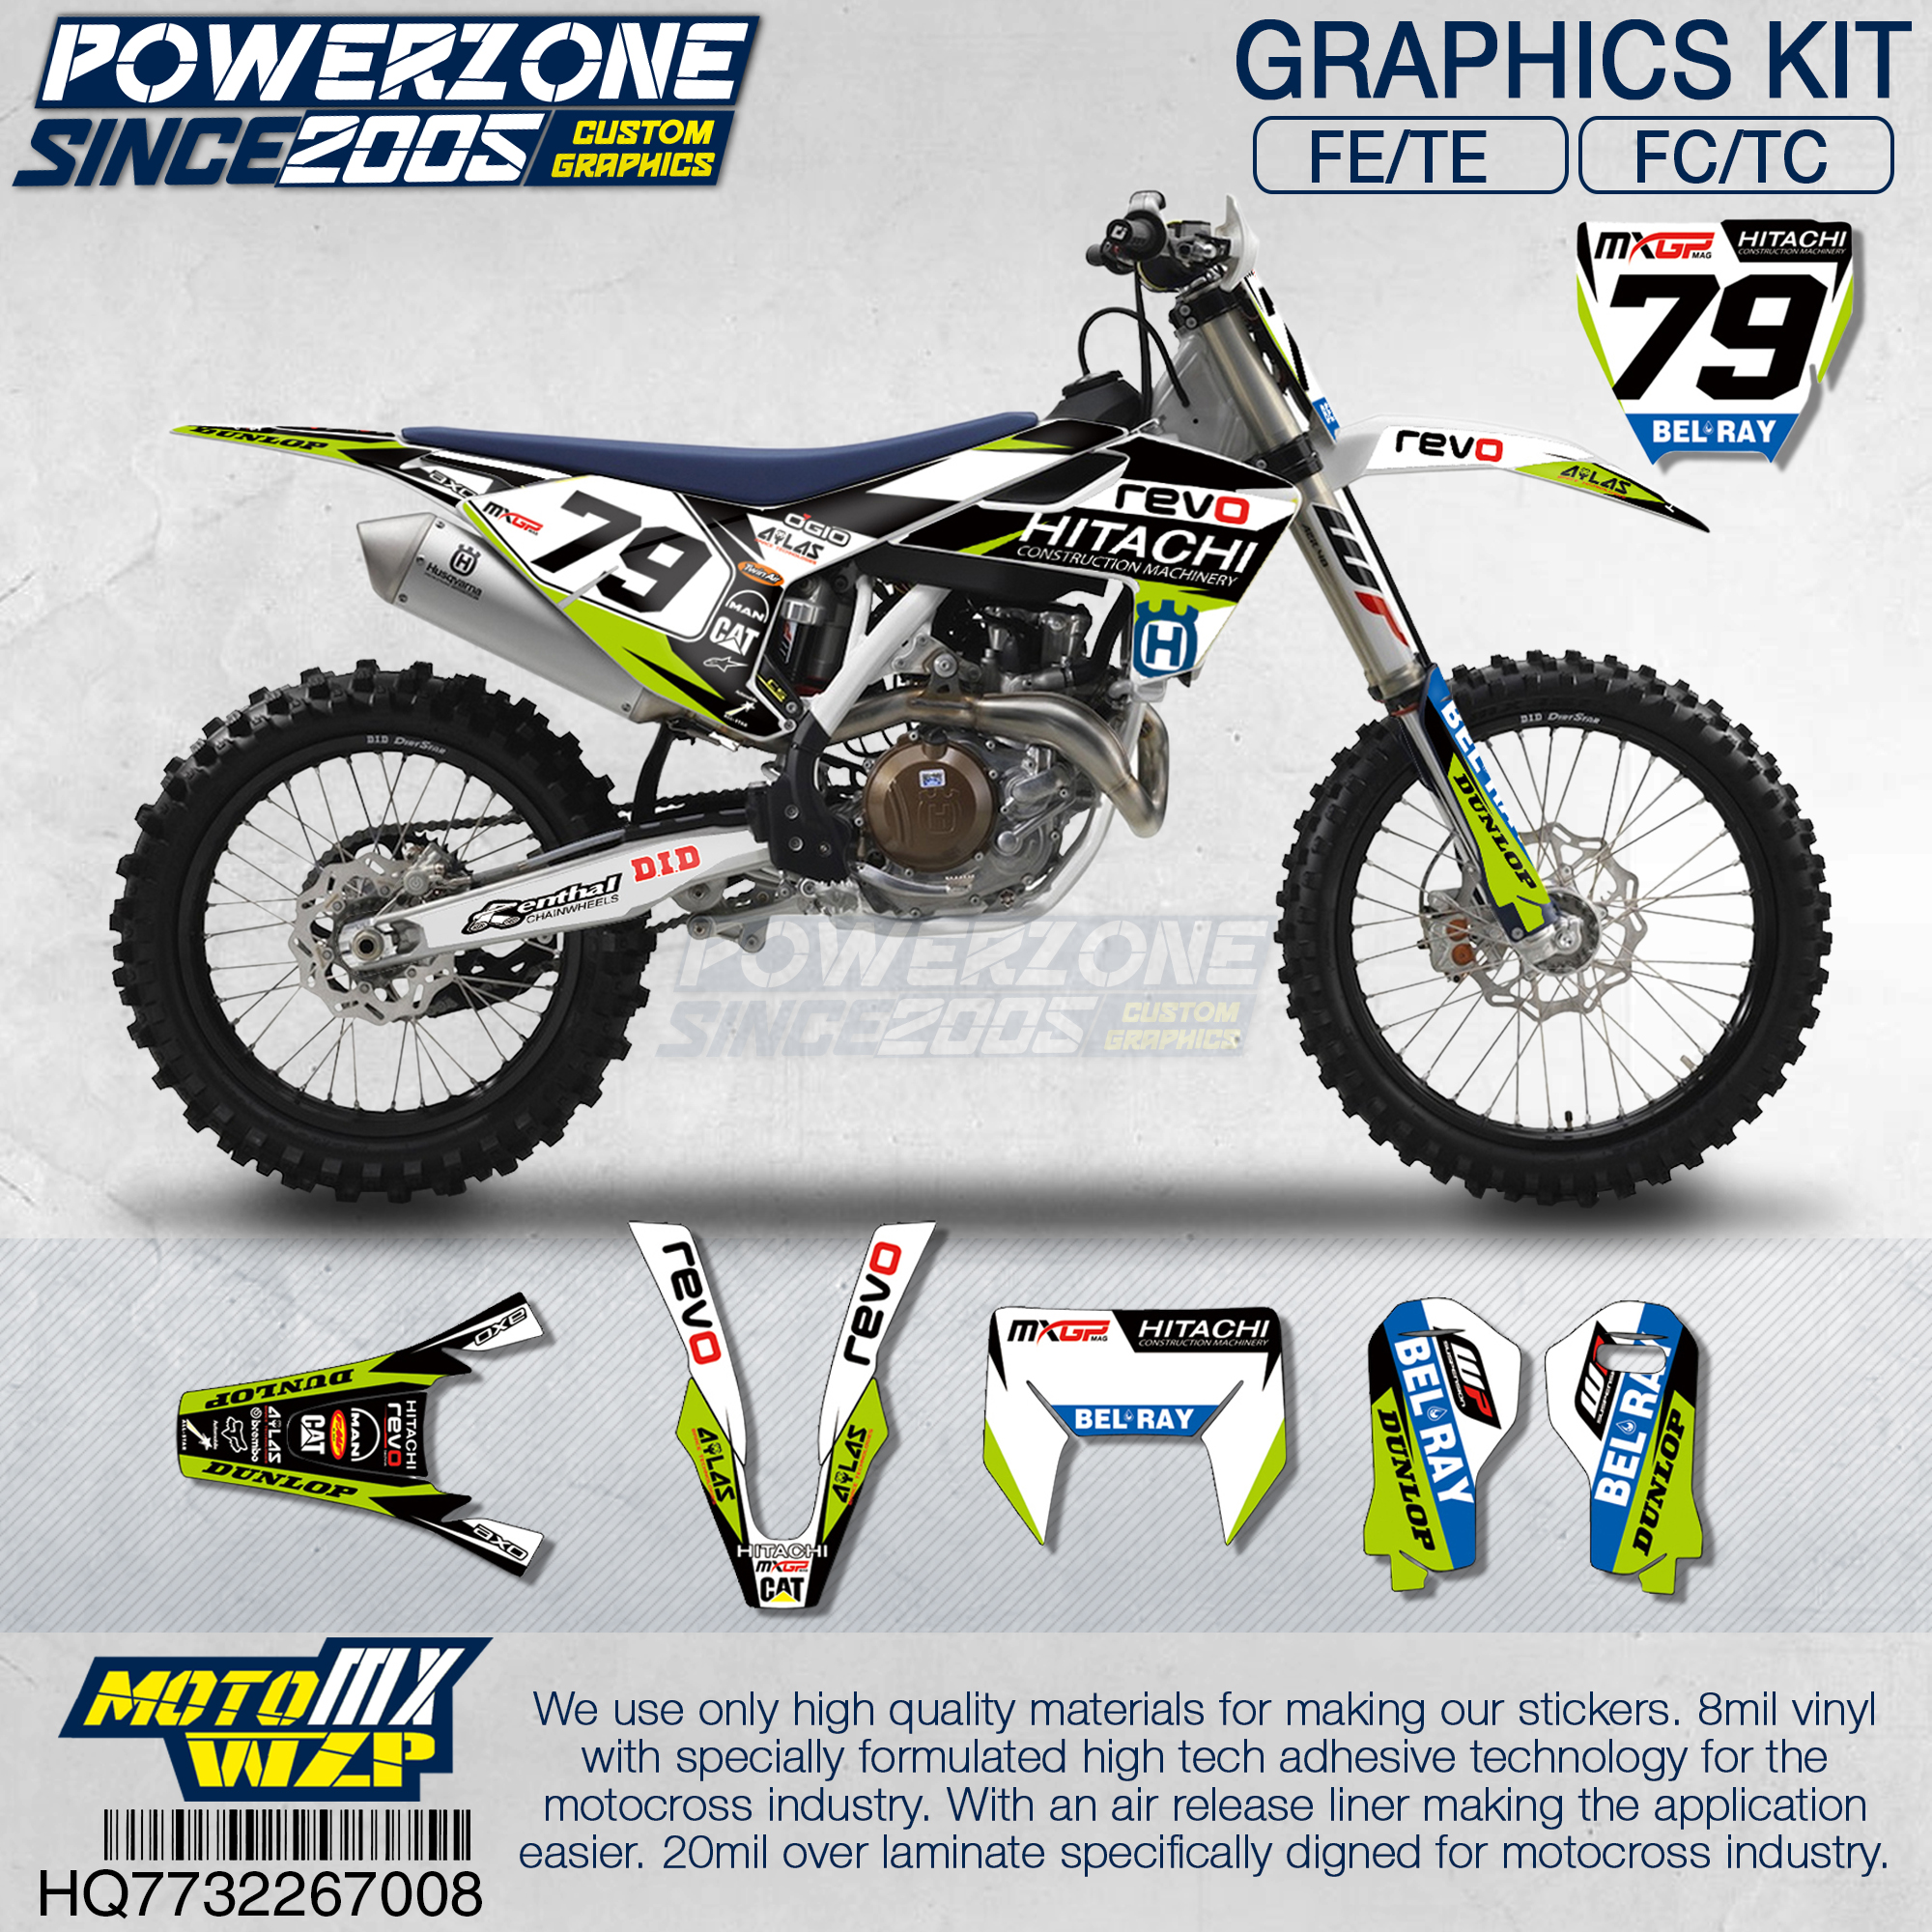 Customized Team Graphics Backgrounds Decals 3M Custom Stickers REVO Kit For Husqvarna 2014  19 FE TE FC TC 250 350 450 500cc 708|Decals & Stickers| |  -